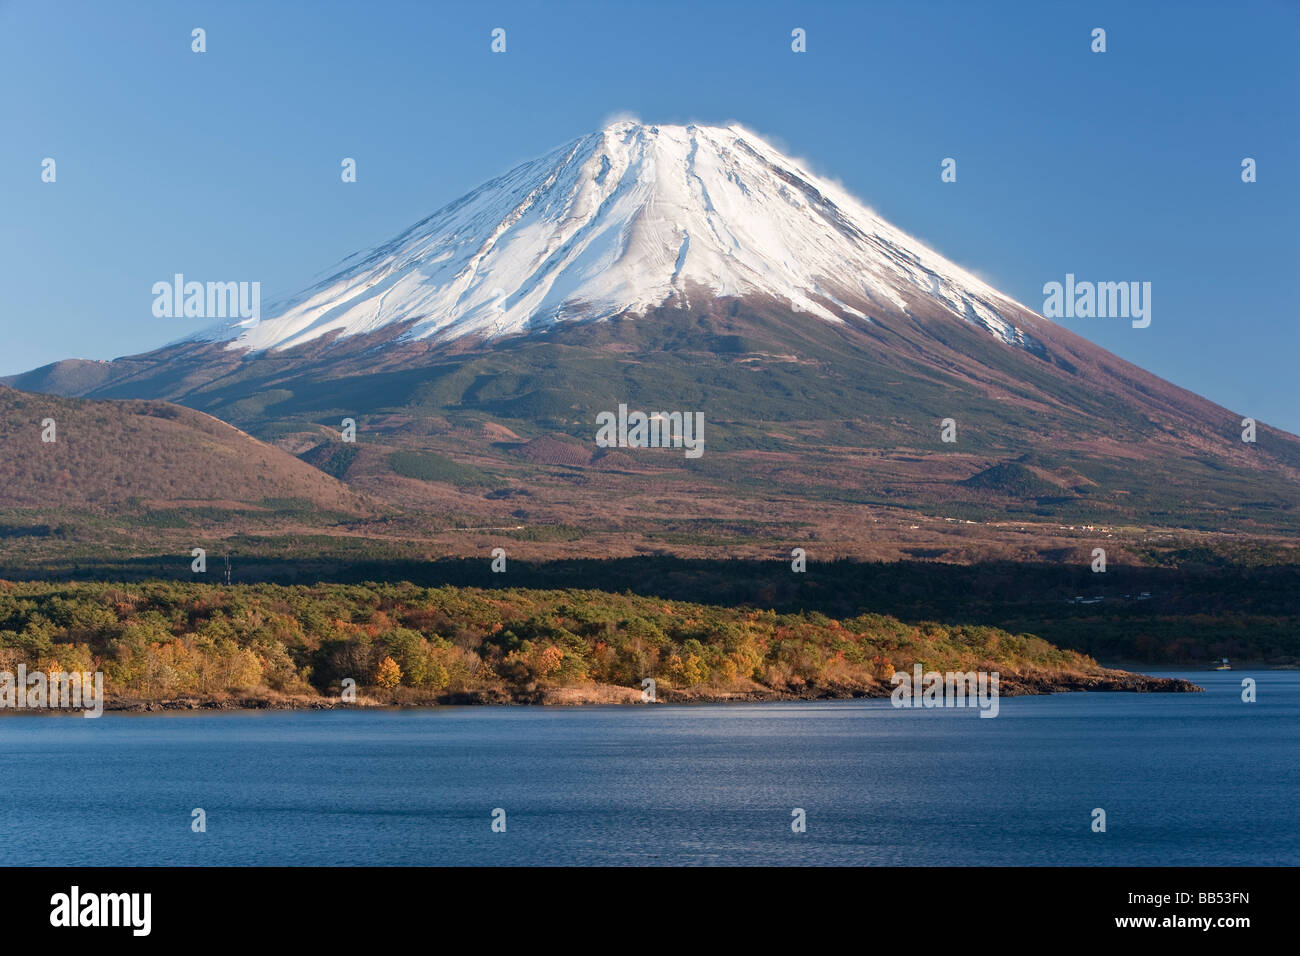 Japan, Central Honshu, Chubu, Fuji-Hakone-Izu National Park, Mount Fuji - Stock Image